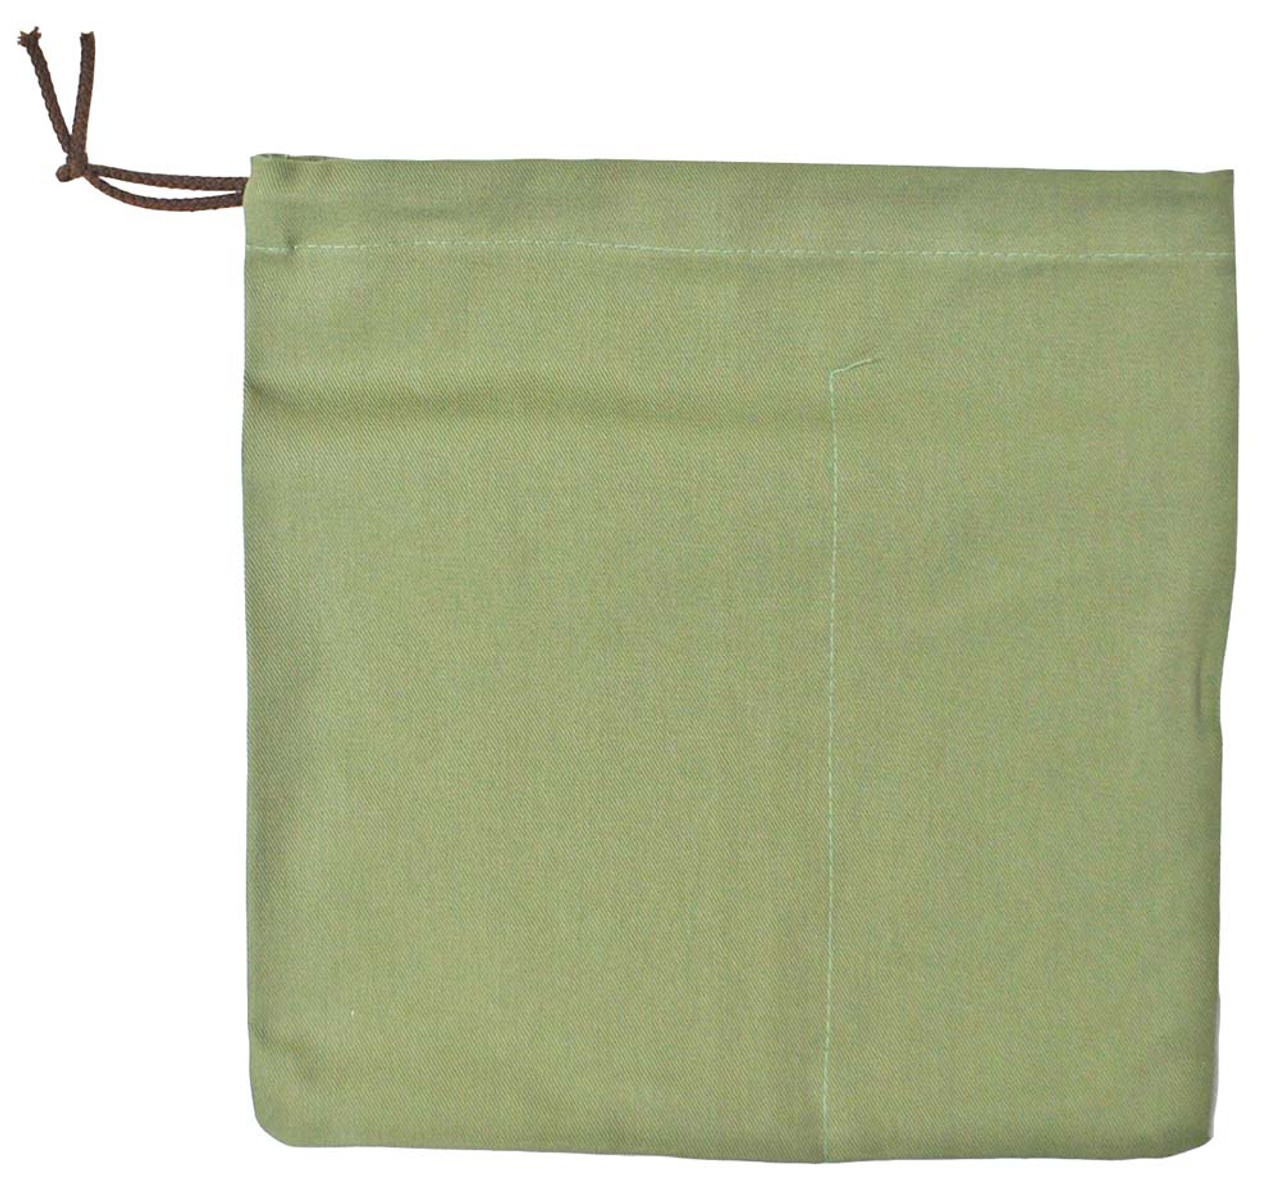 Soldier's Ditty Bag